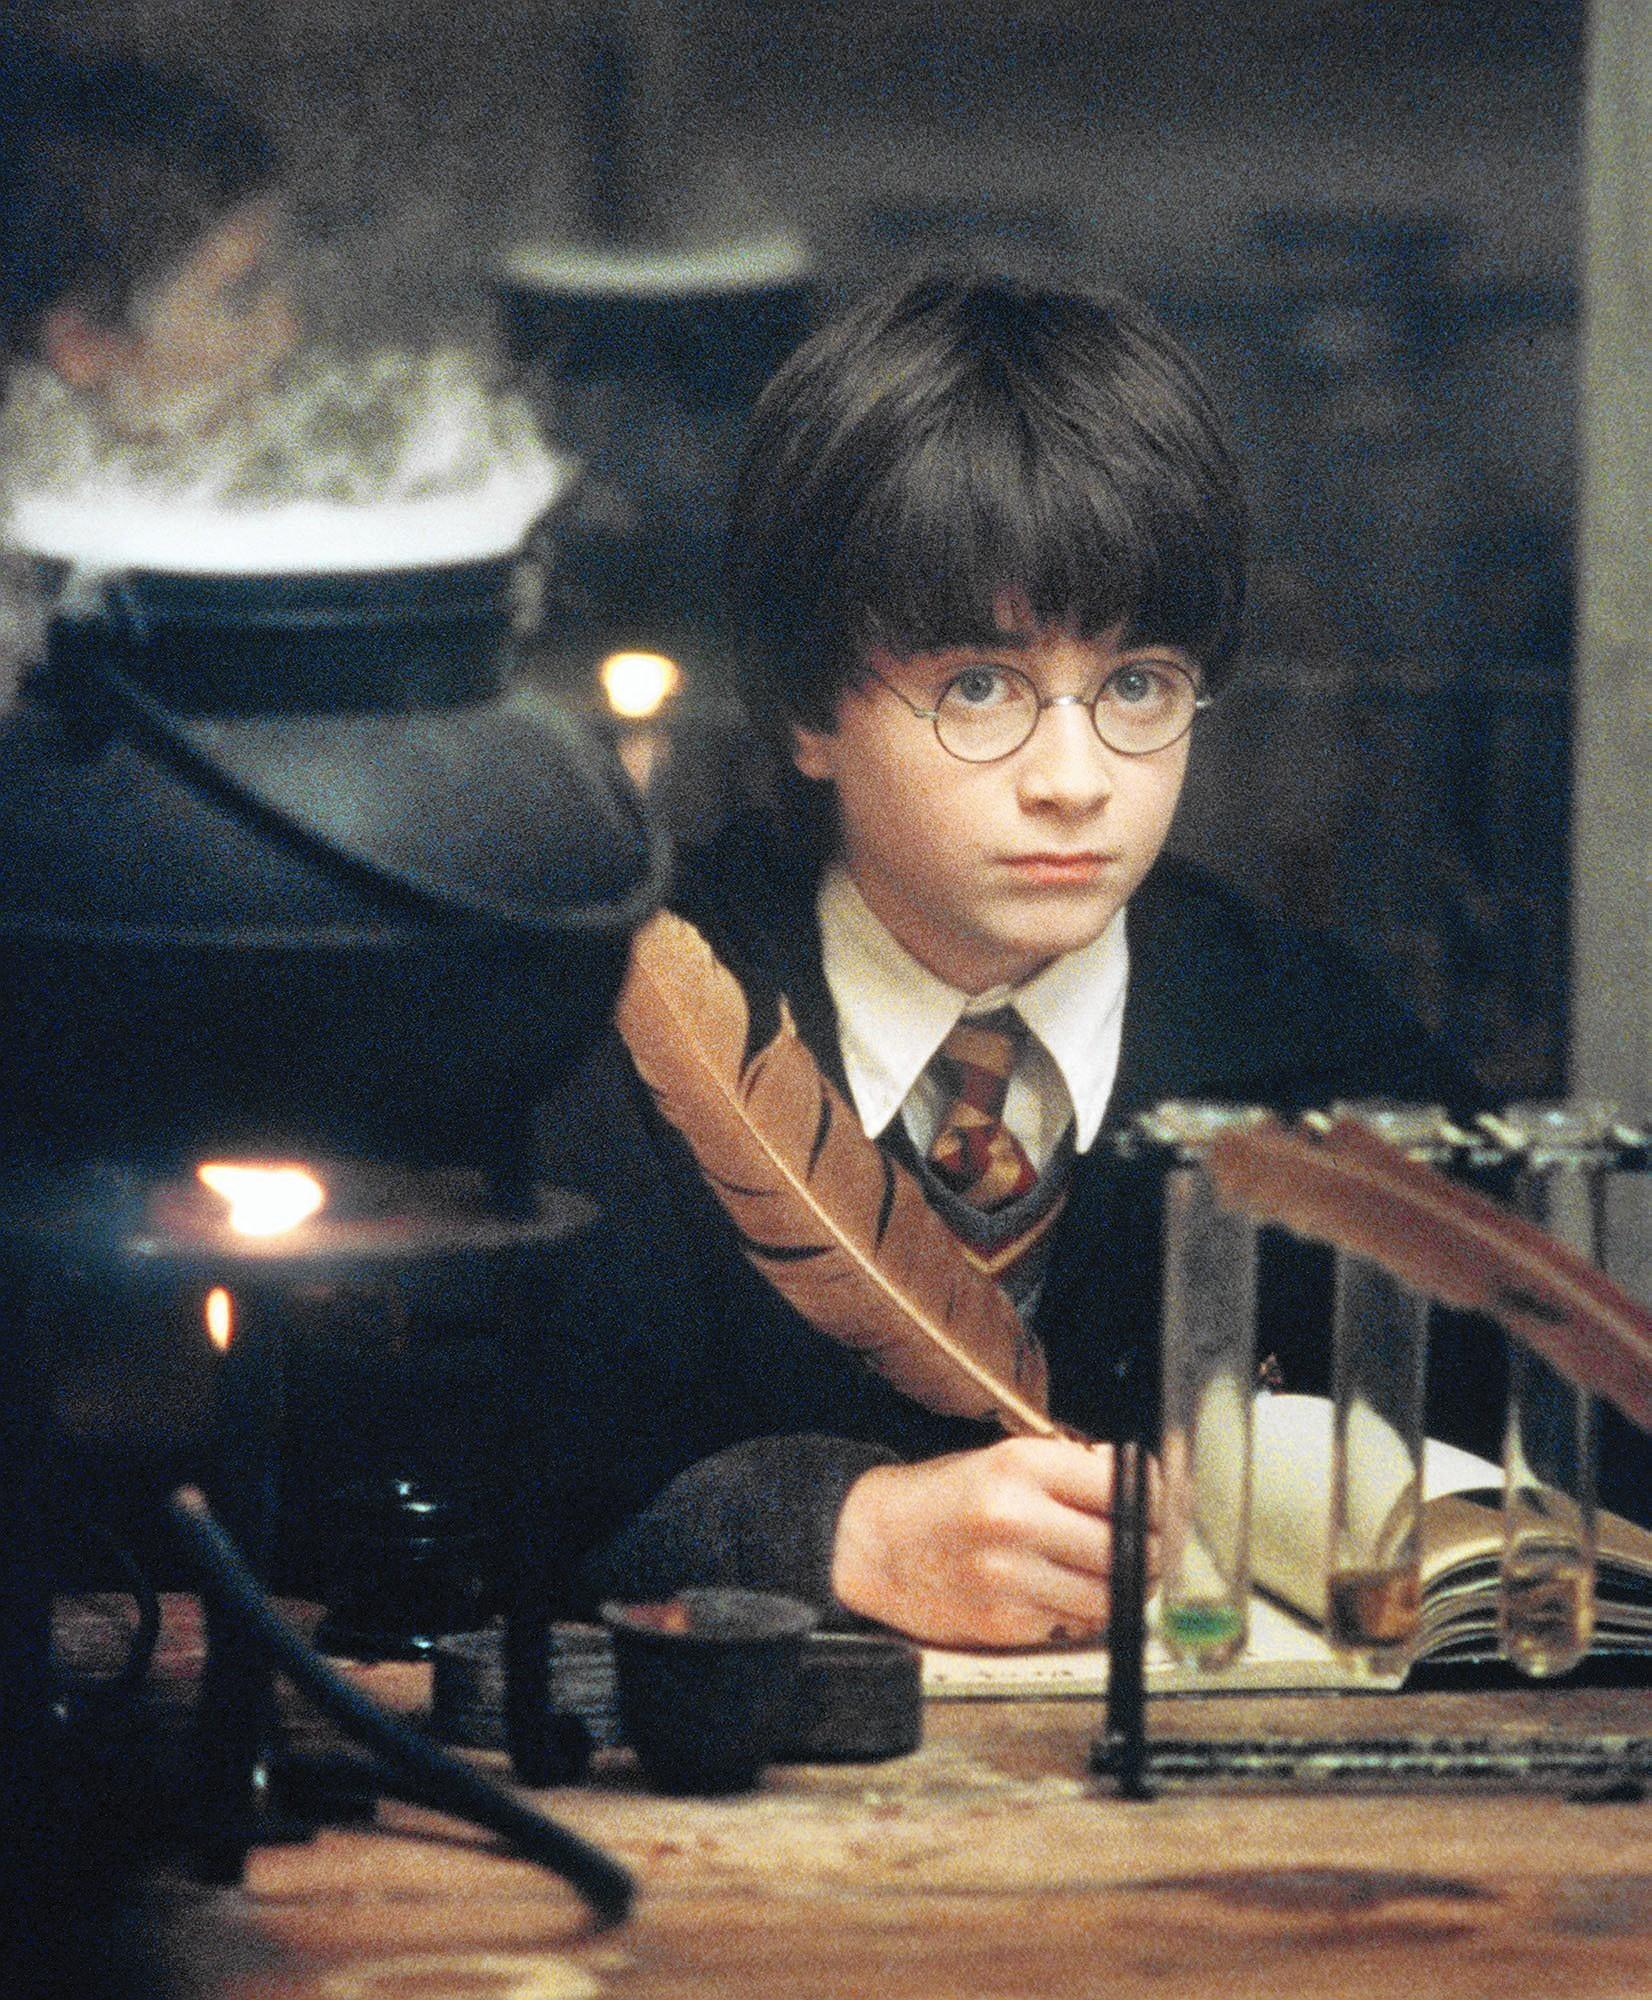 Harry Potter turns 20. Here's how J.K. Rowling and Twitter are celebrating